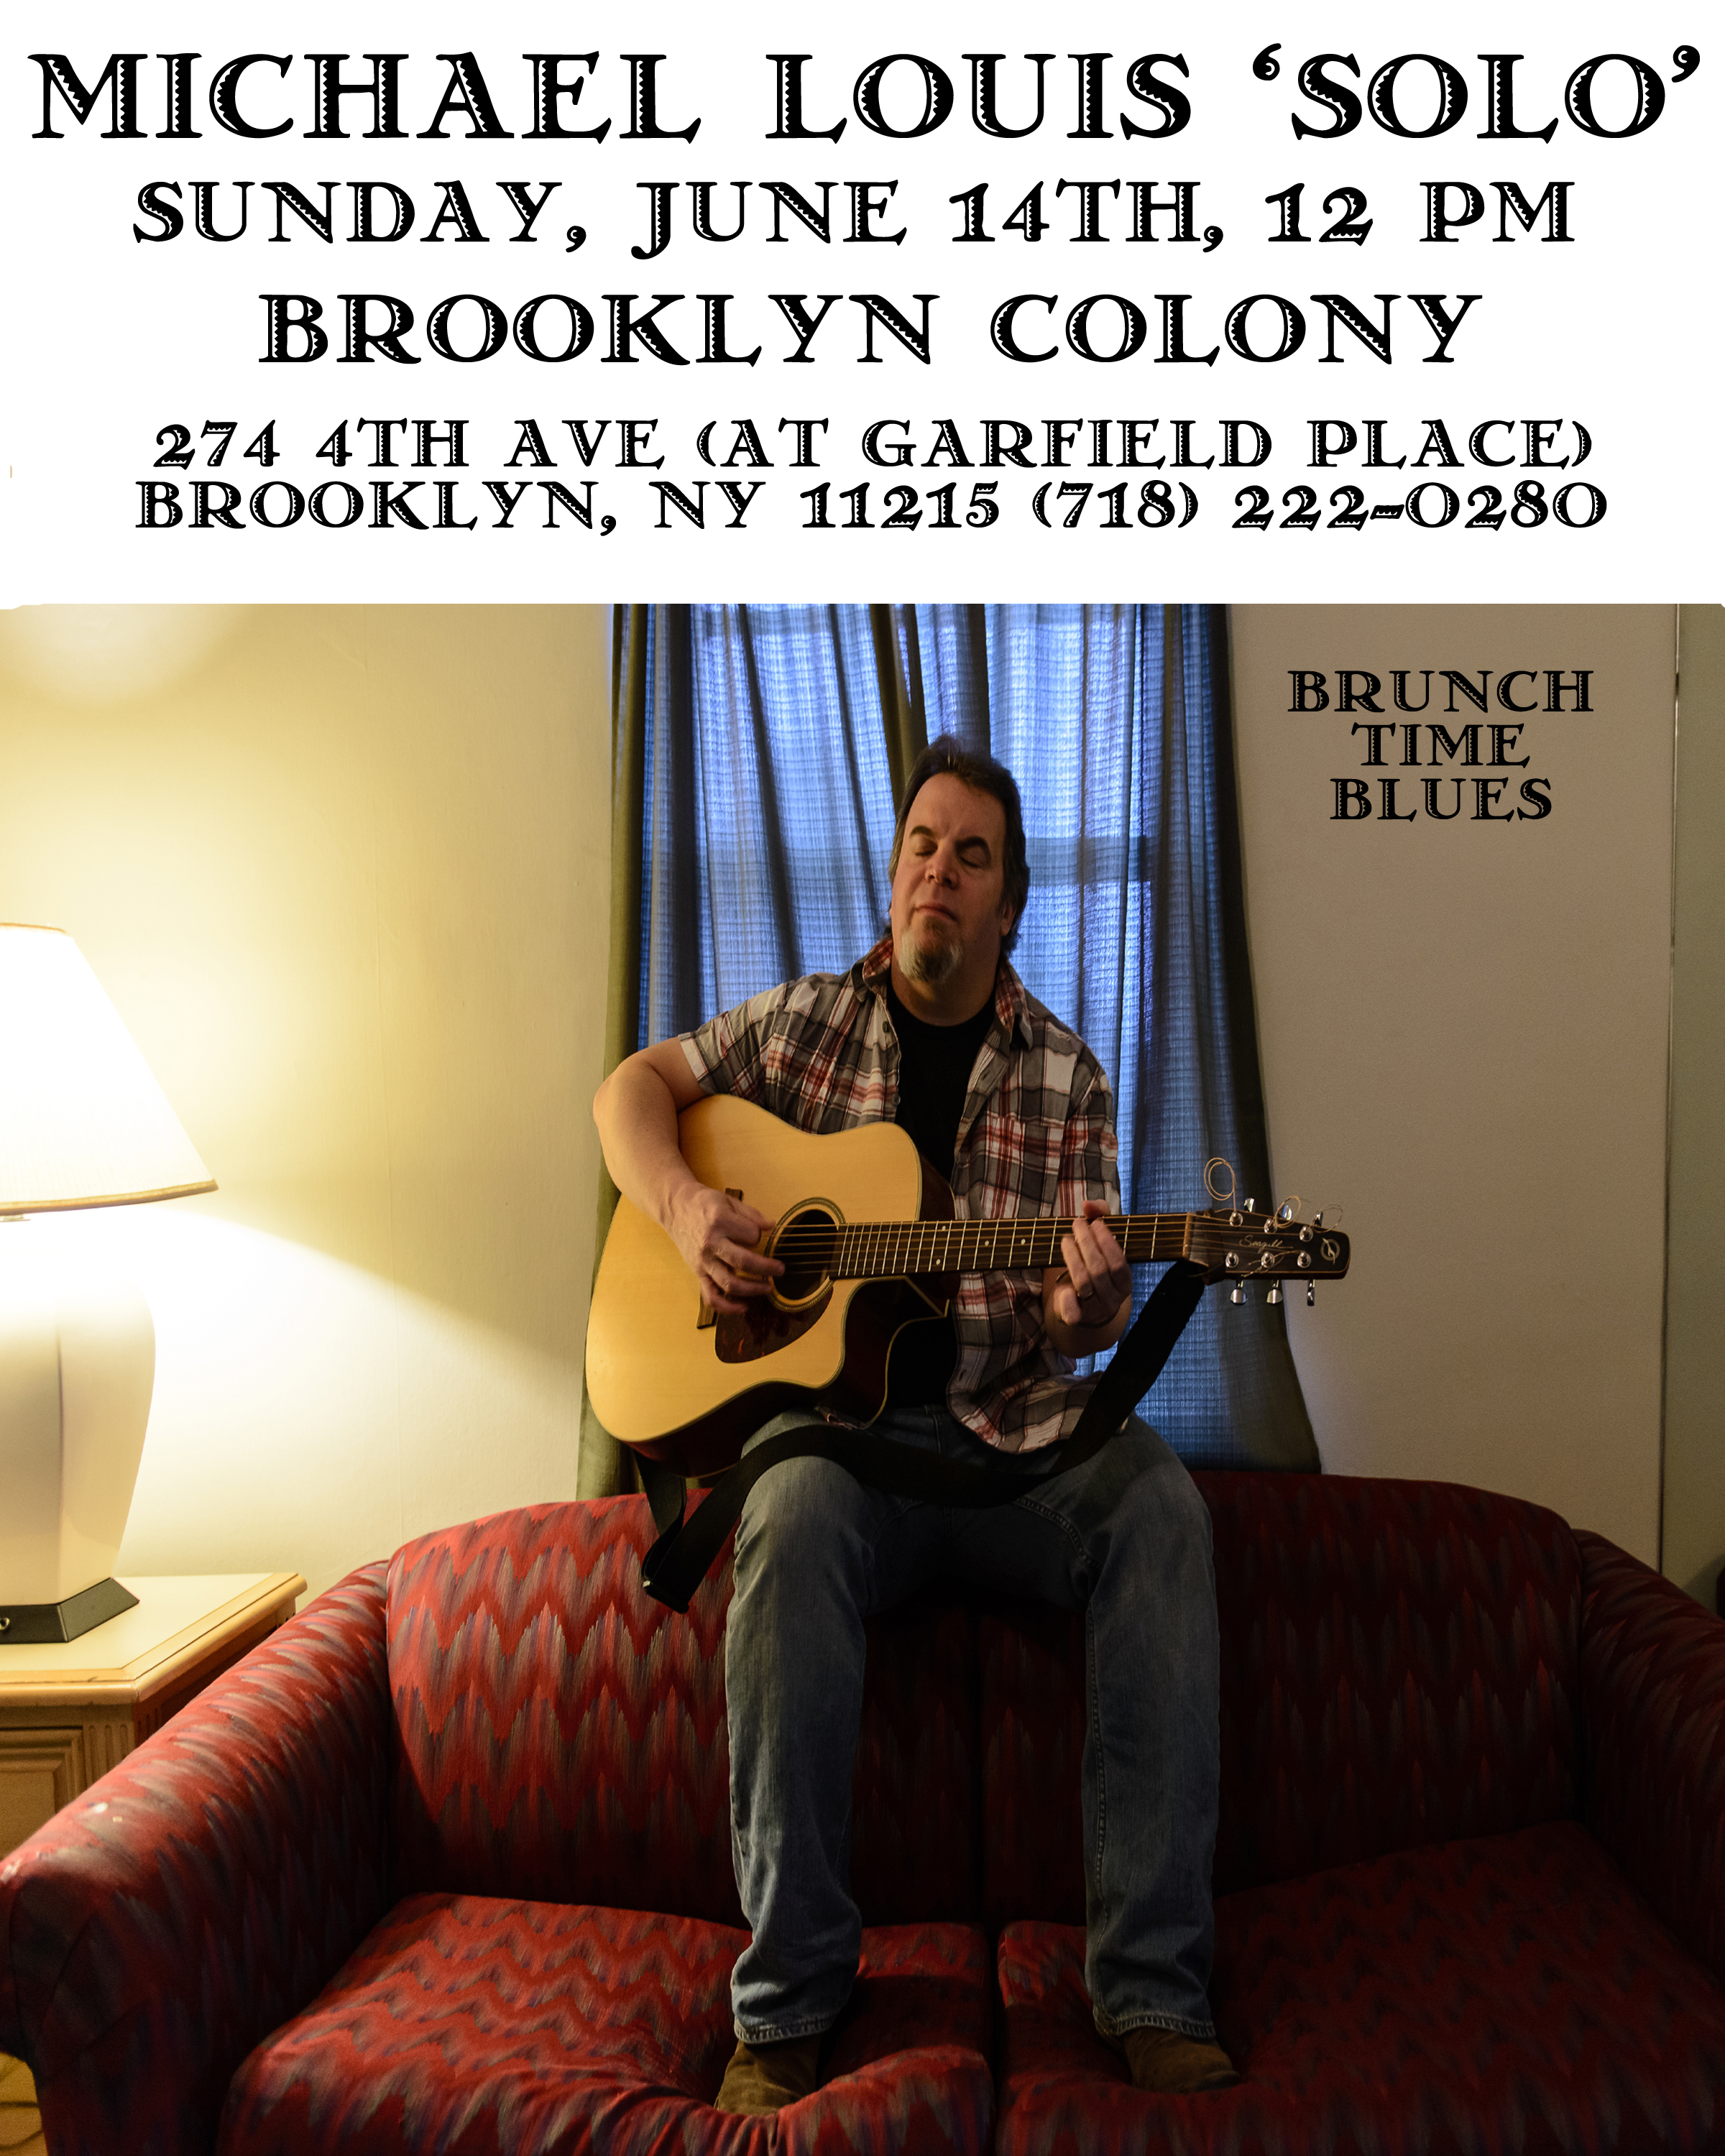 ML SOLO BROOKLYN COLONY 6.14.15 JPEG